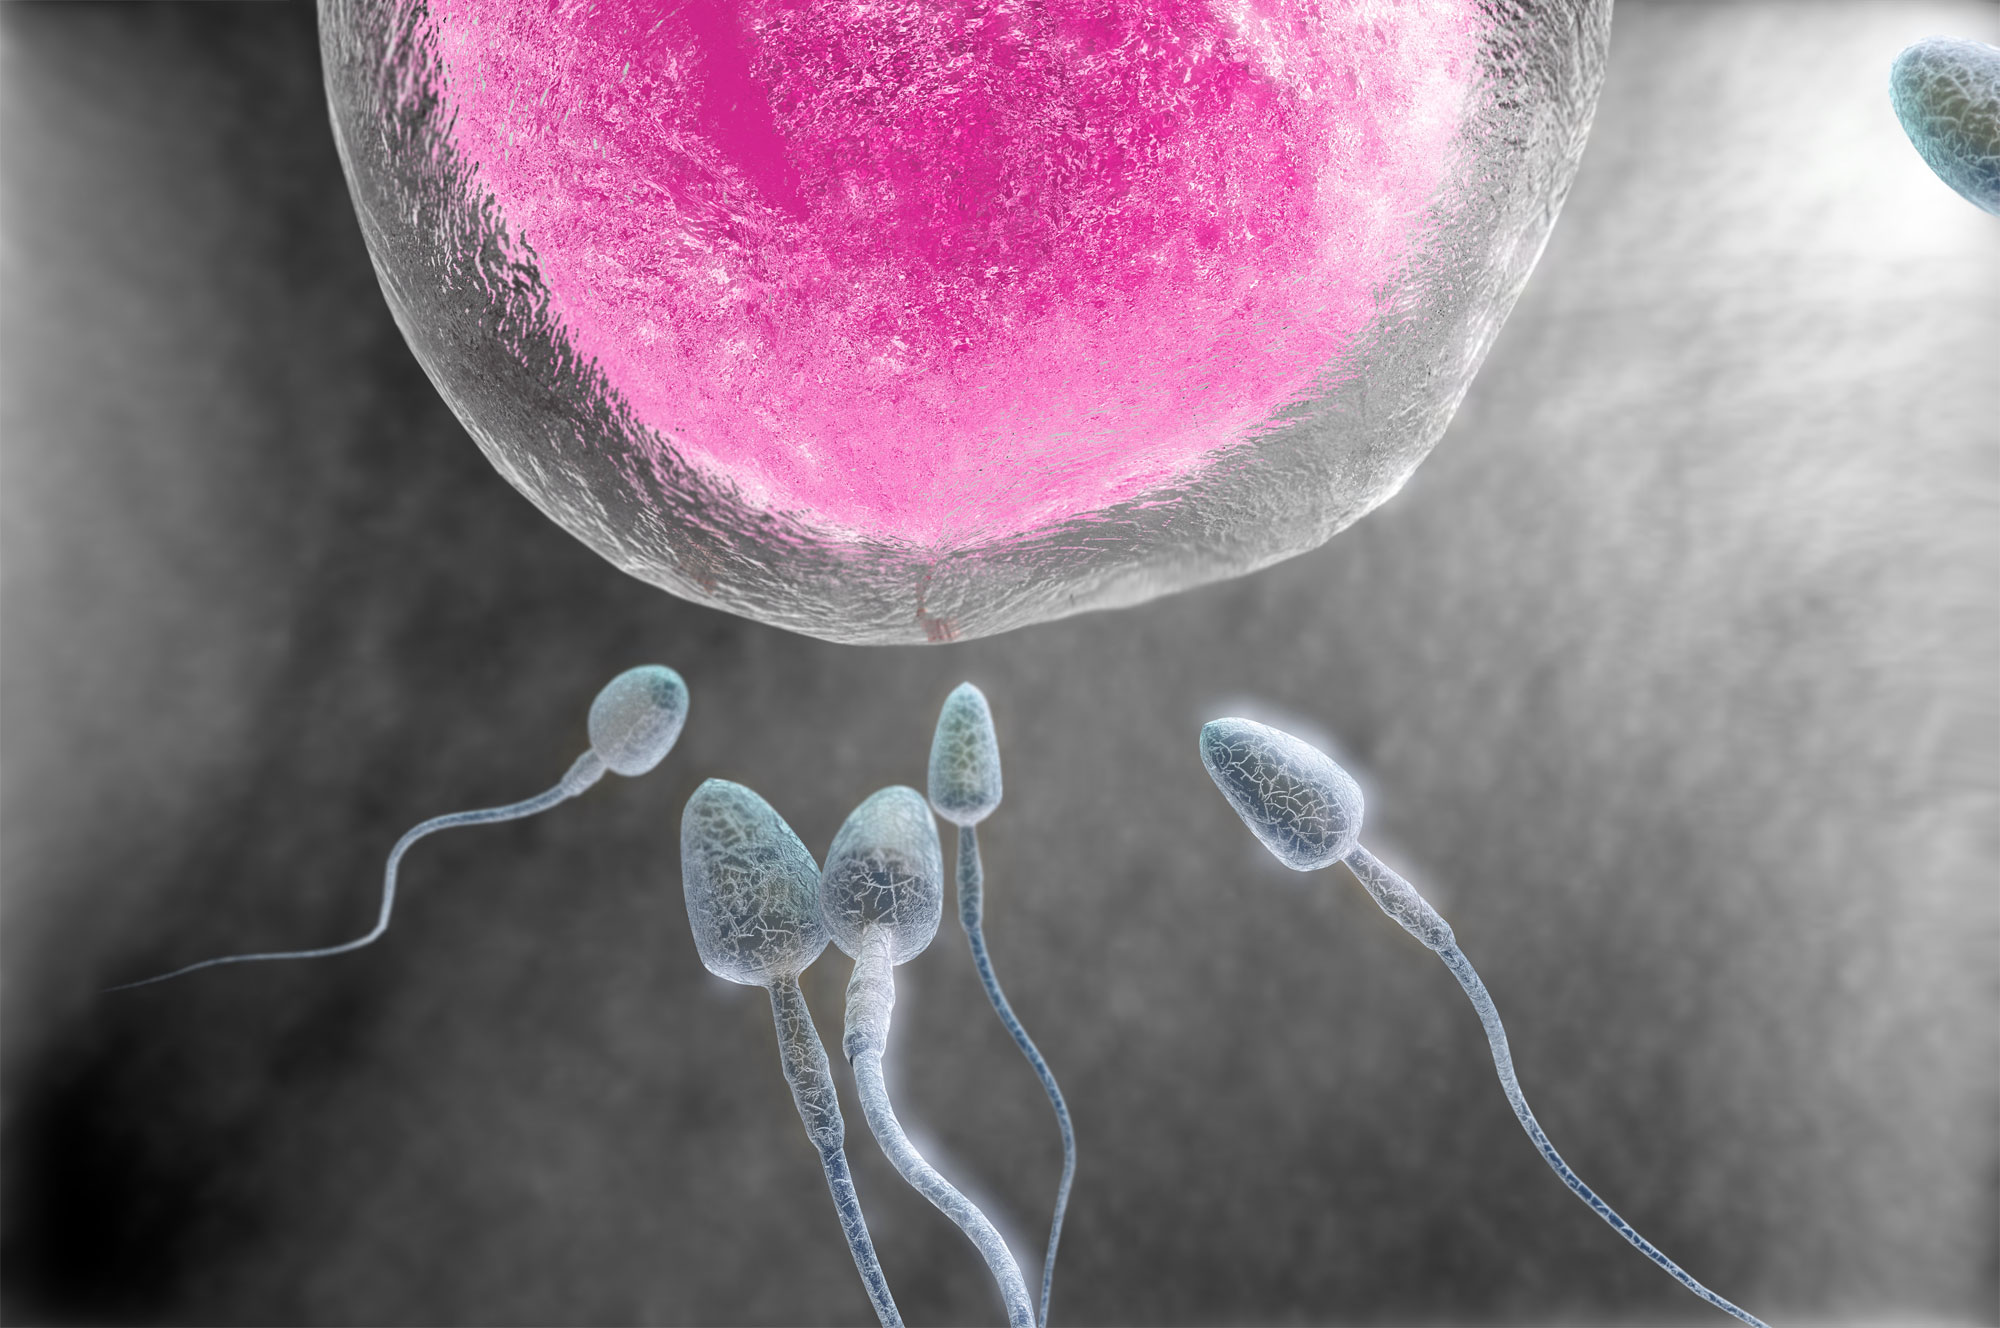 An illustration of a man's sperm about to fertilize a woman's egg